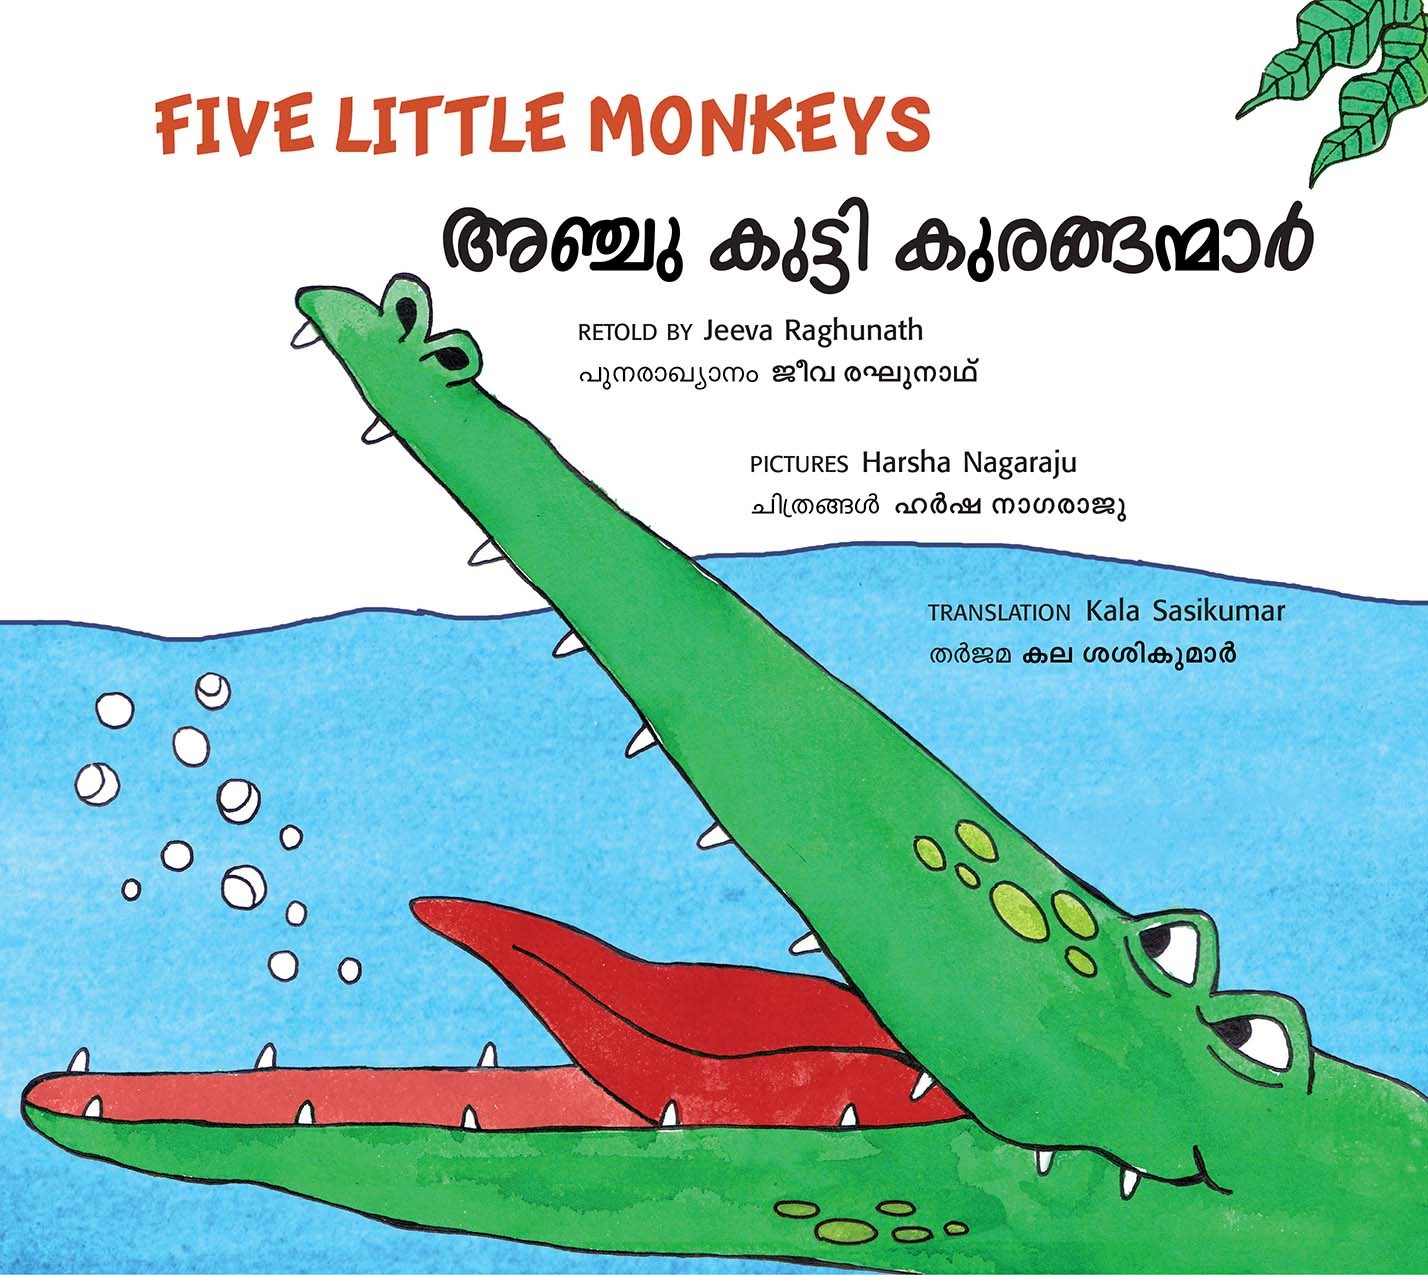 Five Little Monkeys/Anju Kutti Kuranganmaar (English-Malayalam)